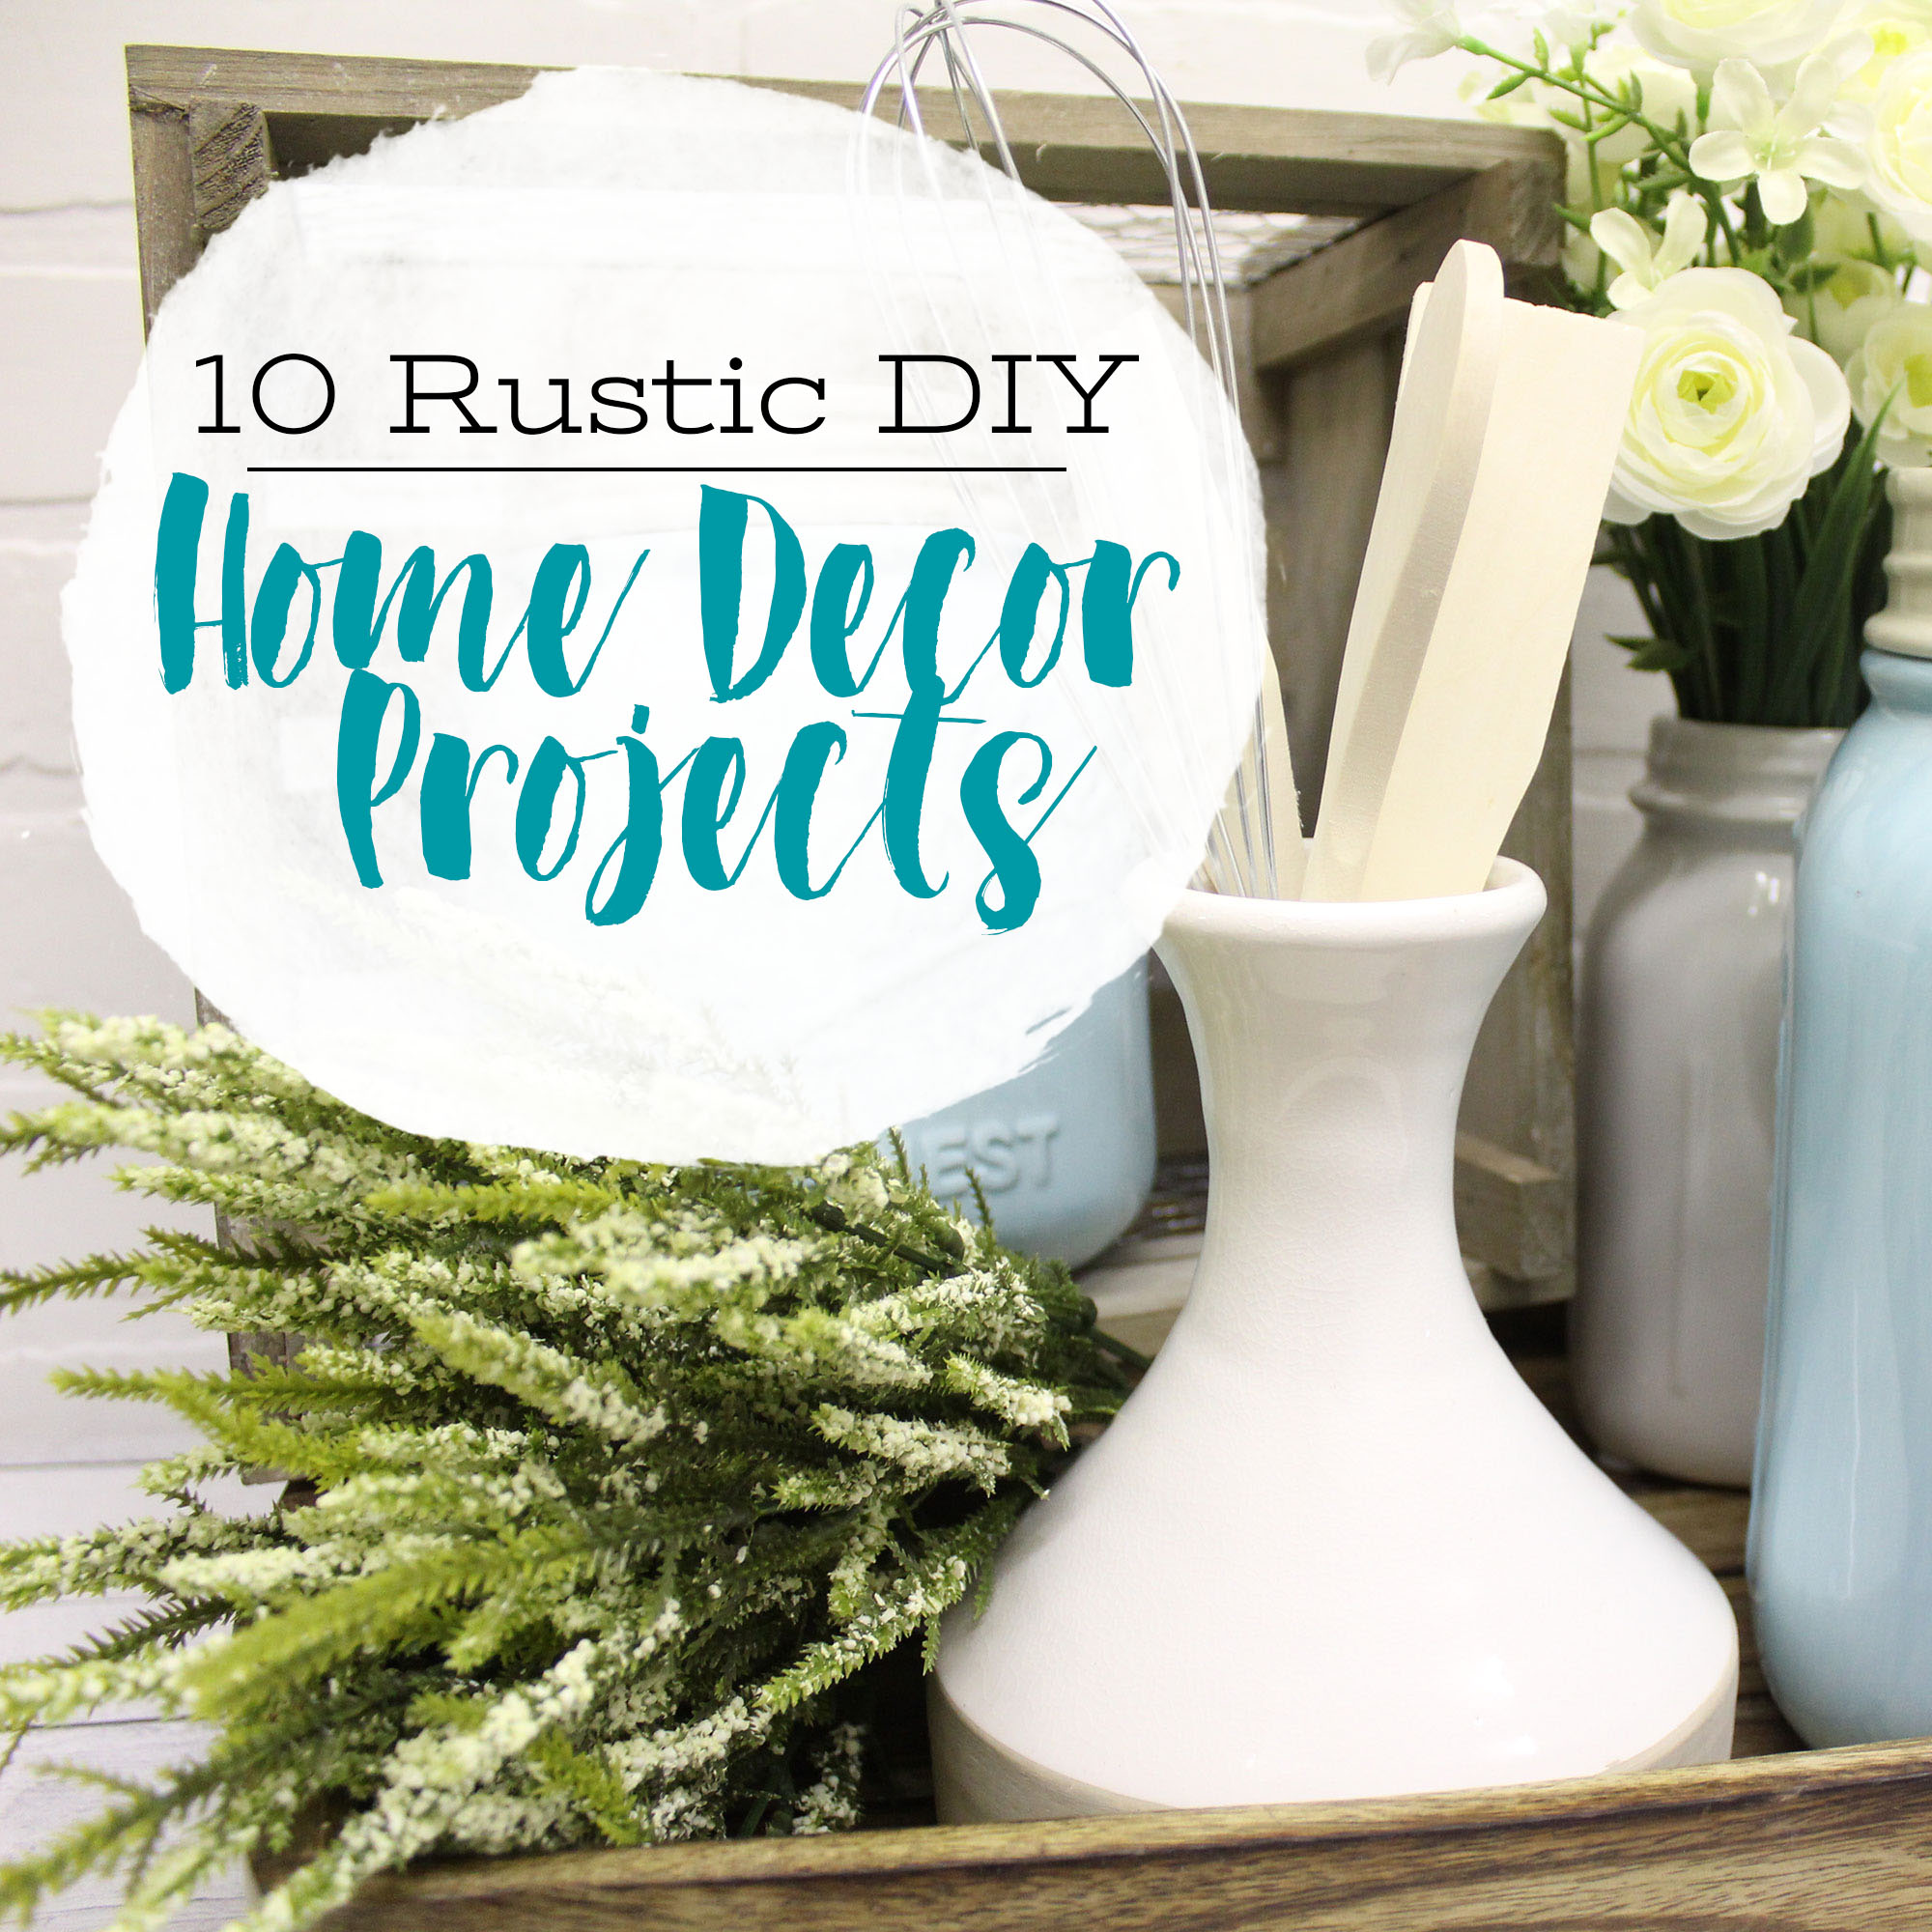 31 Rustic Diy Home Decor Projects: 10 Rustic DIY Home Décor Projects We Know You'll Love!